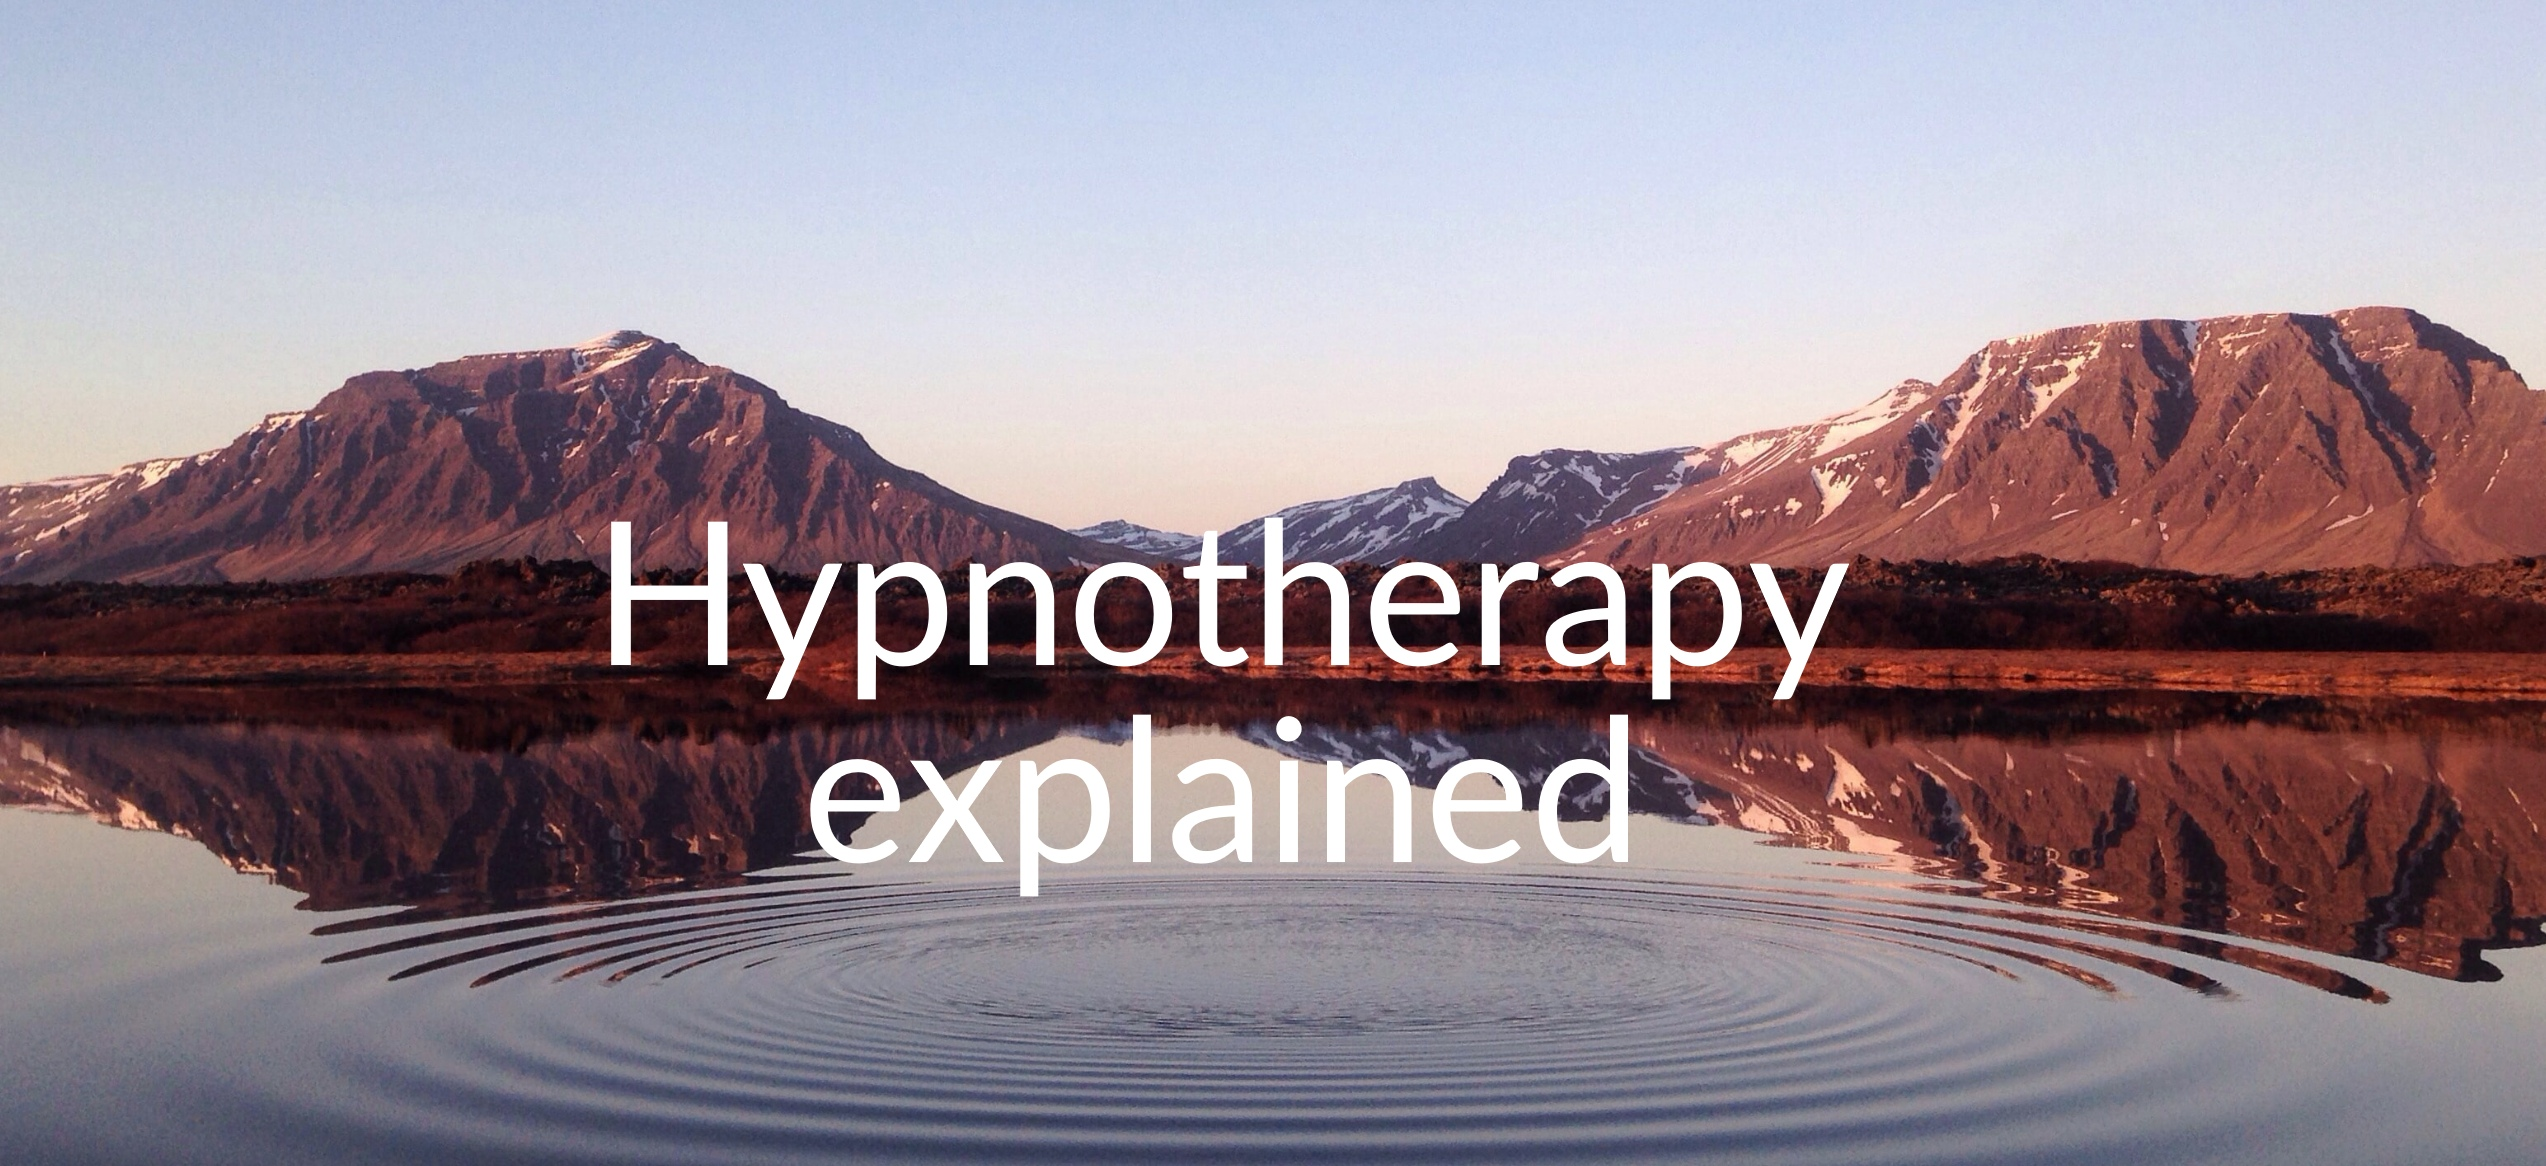 Hypnotherapy Explained - learn how it can help you overcome issues - Rebecca Edmonds Hypnotherapy Hypnotherapist Online Hereford, Malvern and Droitwich